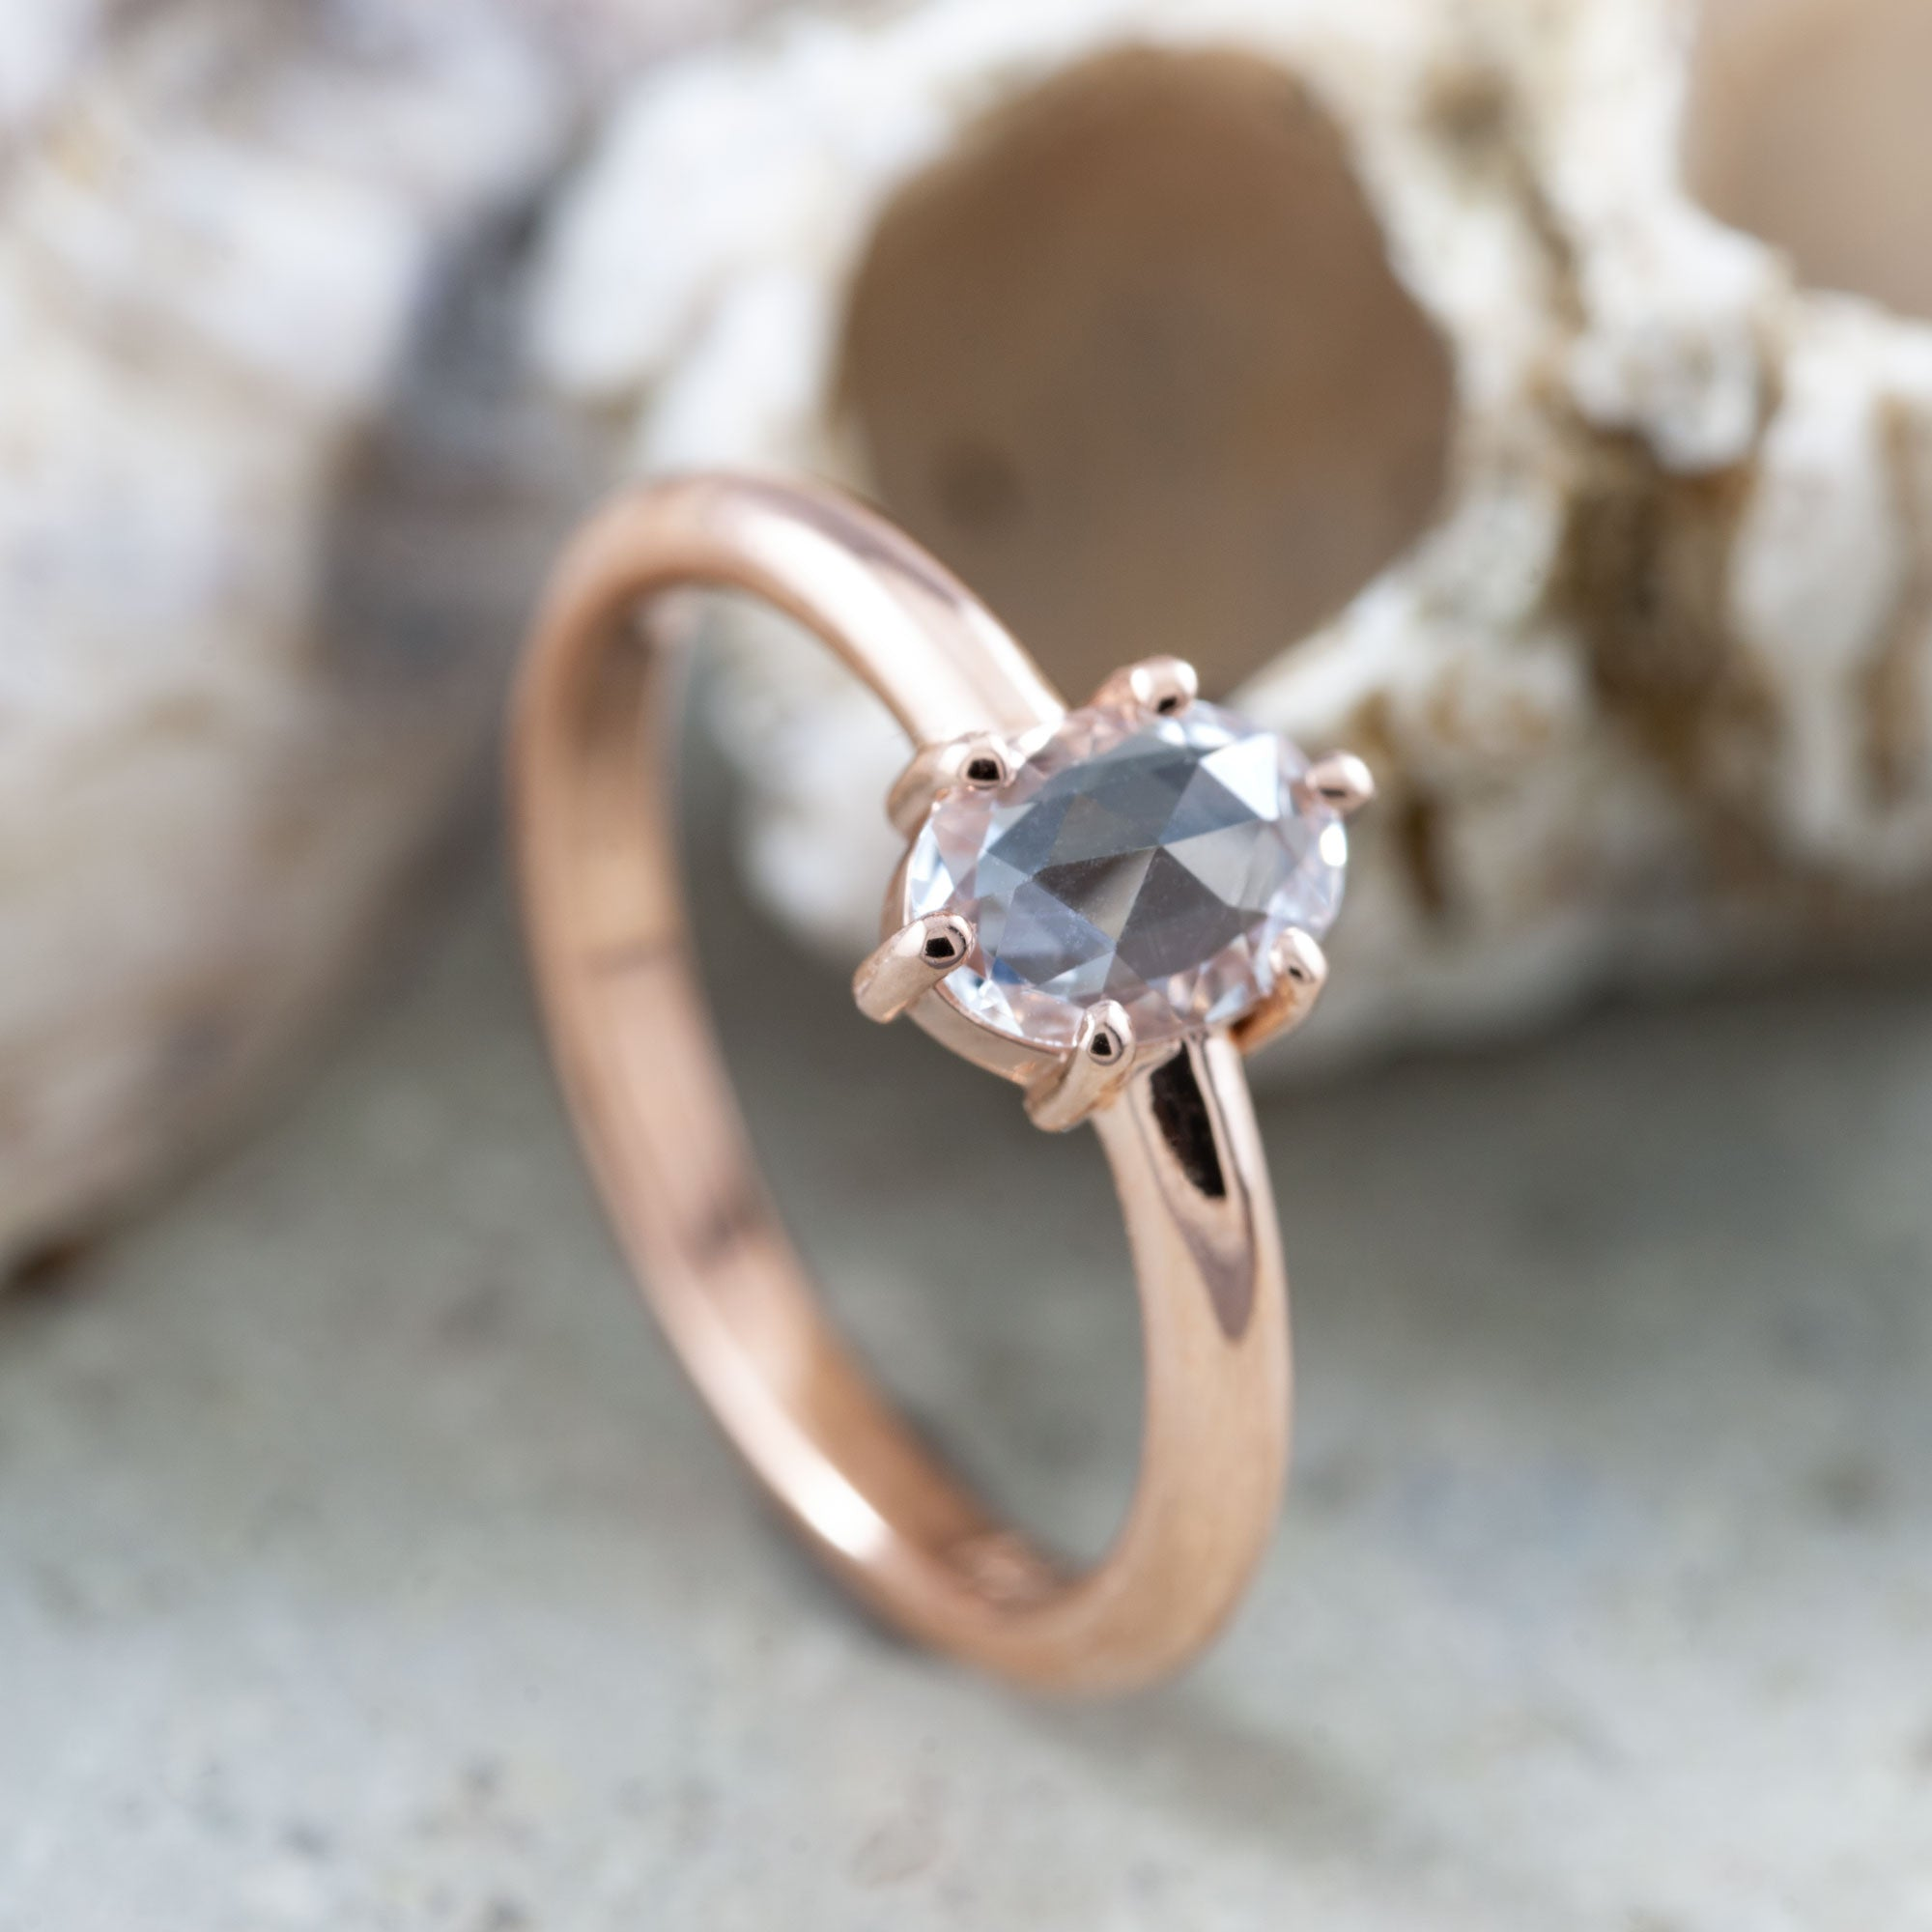 Rose Cut Sapphire Engagement Ring | Era Design Vancouver Canada